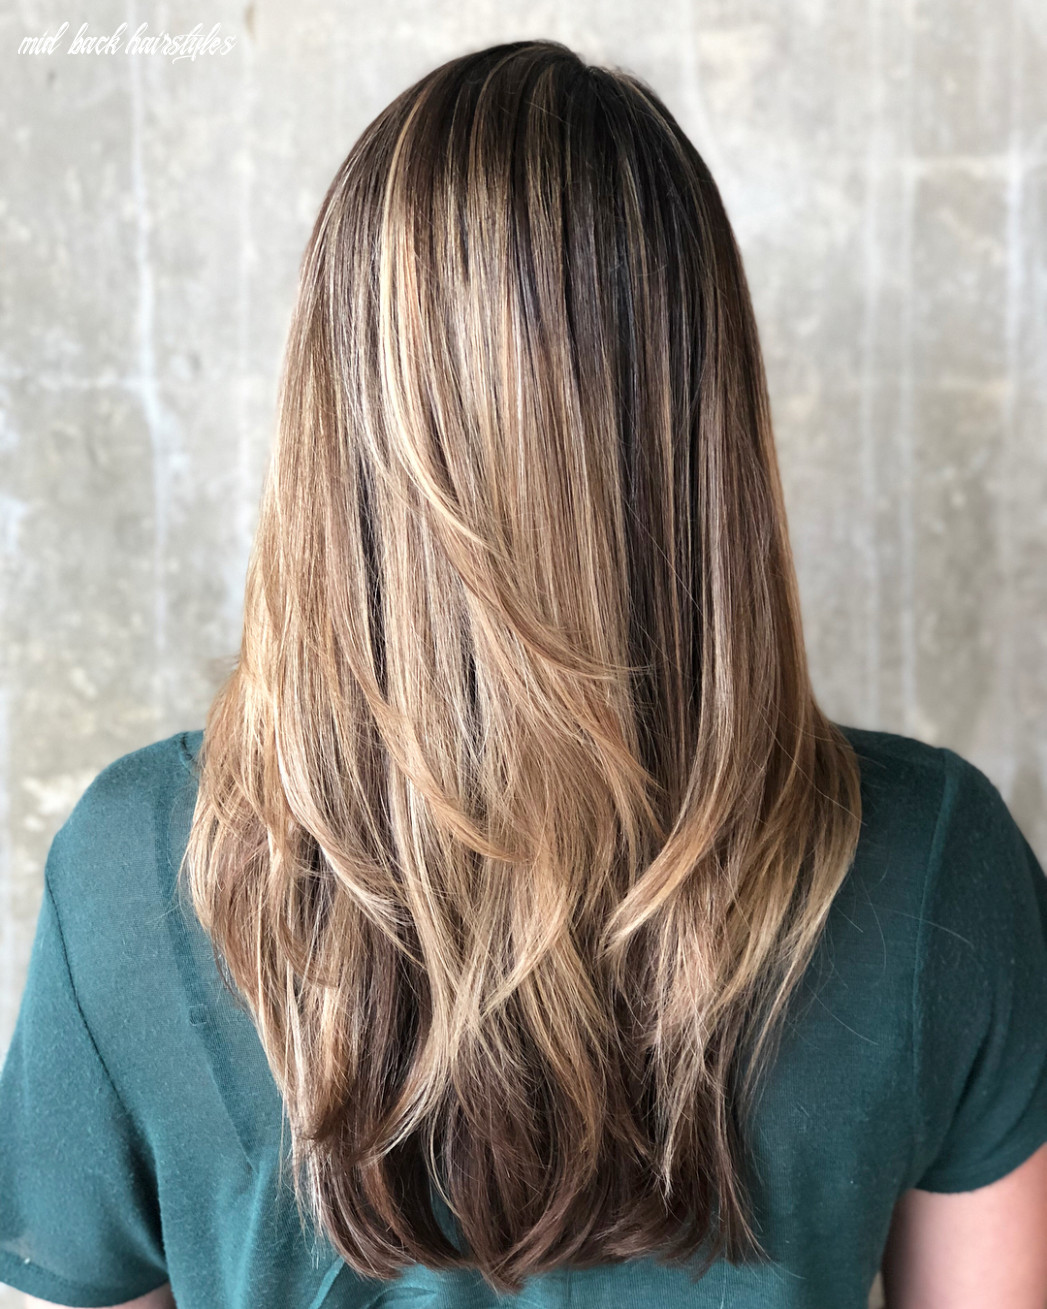 12 new long hairstyles with layers for 12 hair adviser mid back hairstyles